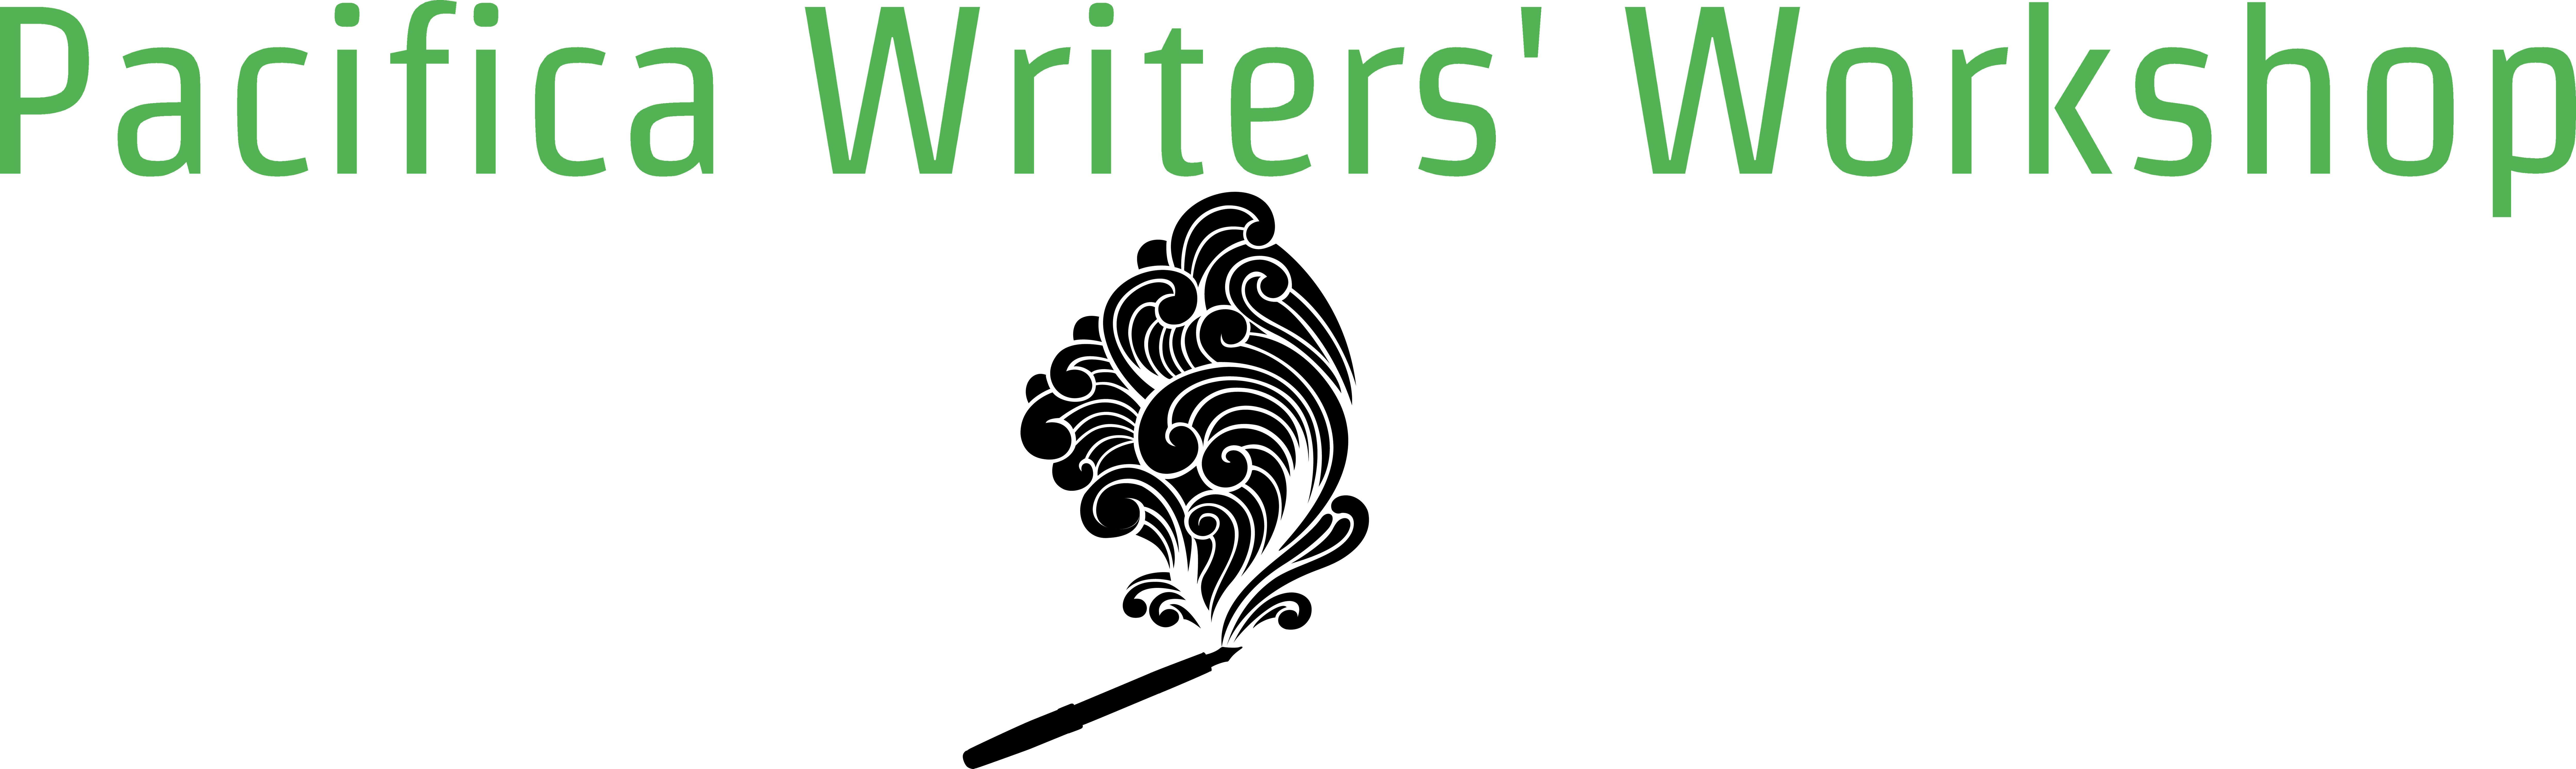 Clipart writing writers workshop. Pacifica classes for youth